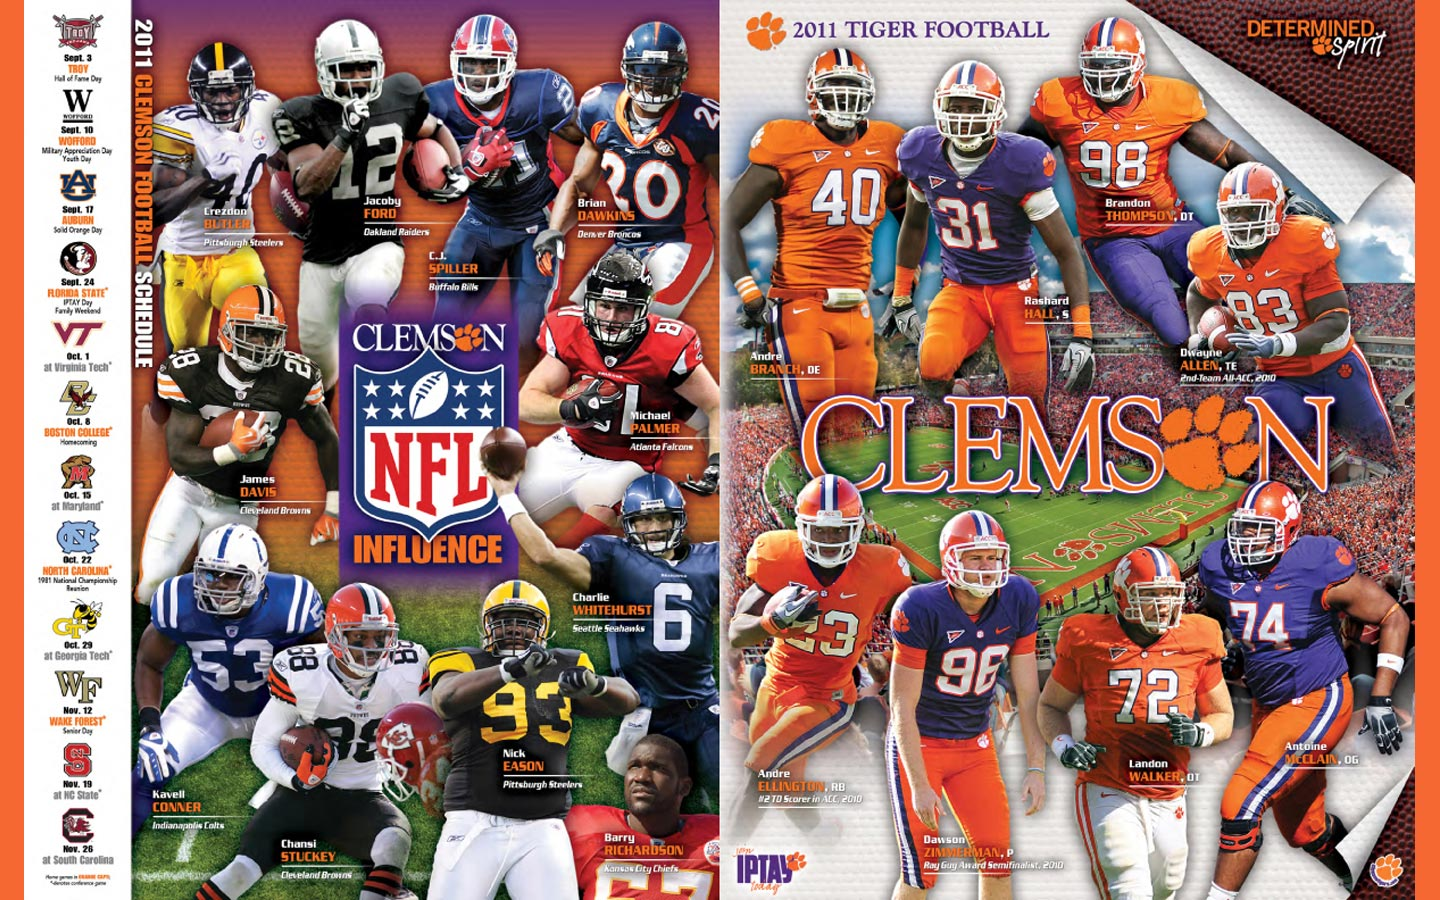 Pin Clemson Funny Page 2 3 1440x900